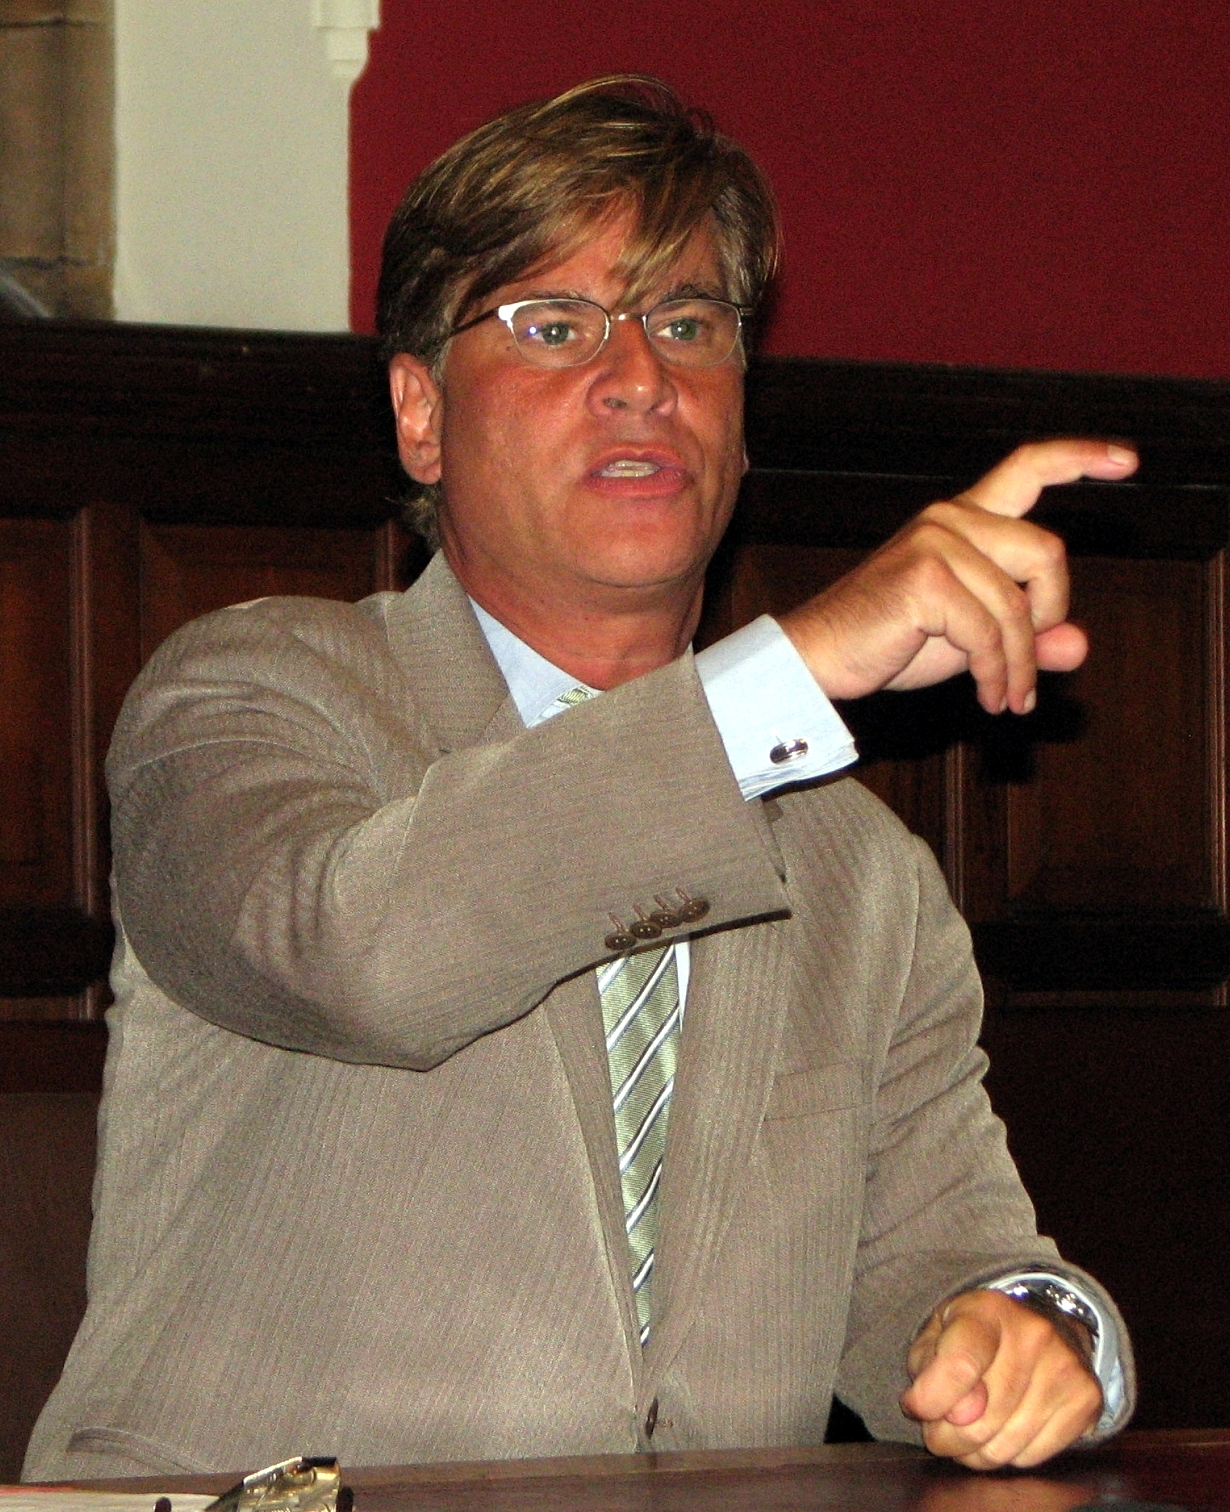 Aaron Sorkin on May 18, 2009